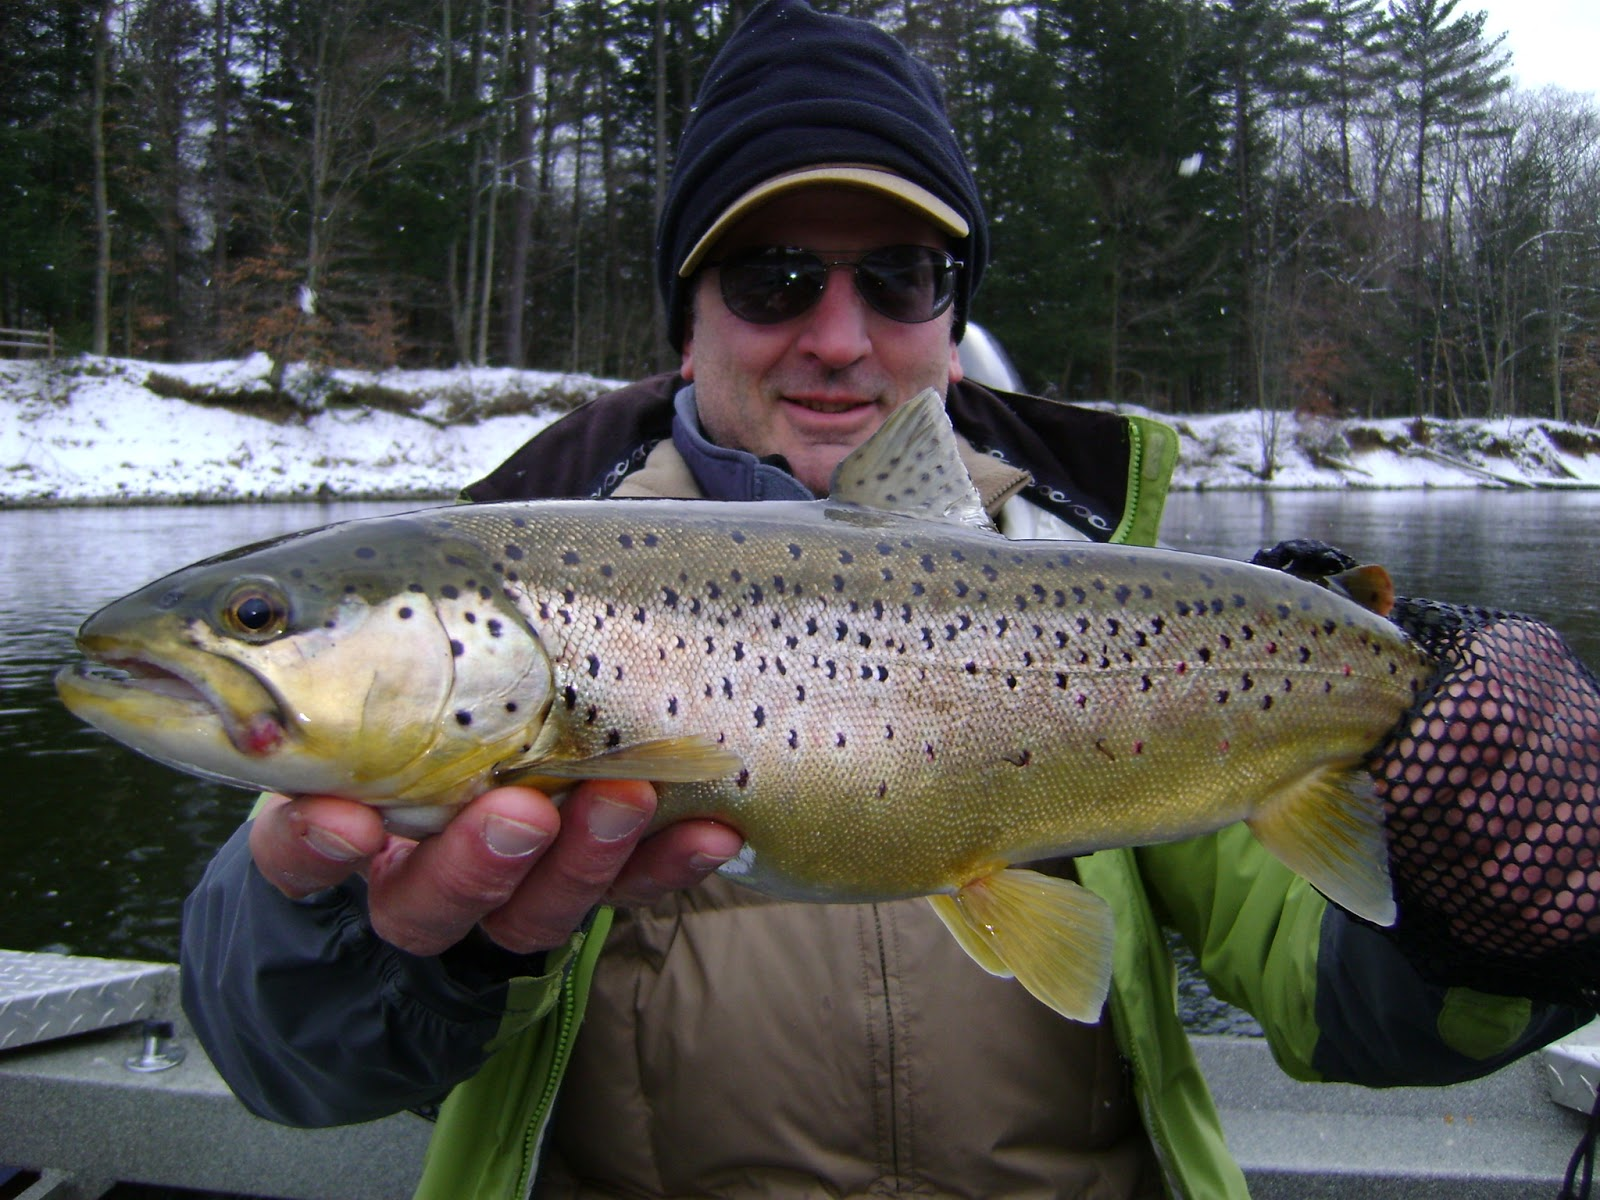 Michigan Fly Fishing Reports - Muskegon, Pere Marquette, Manistee